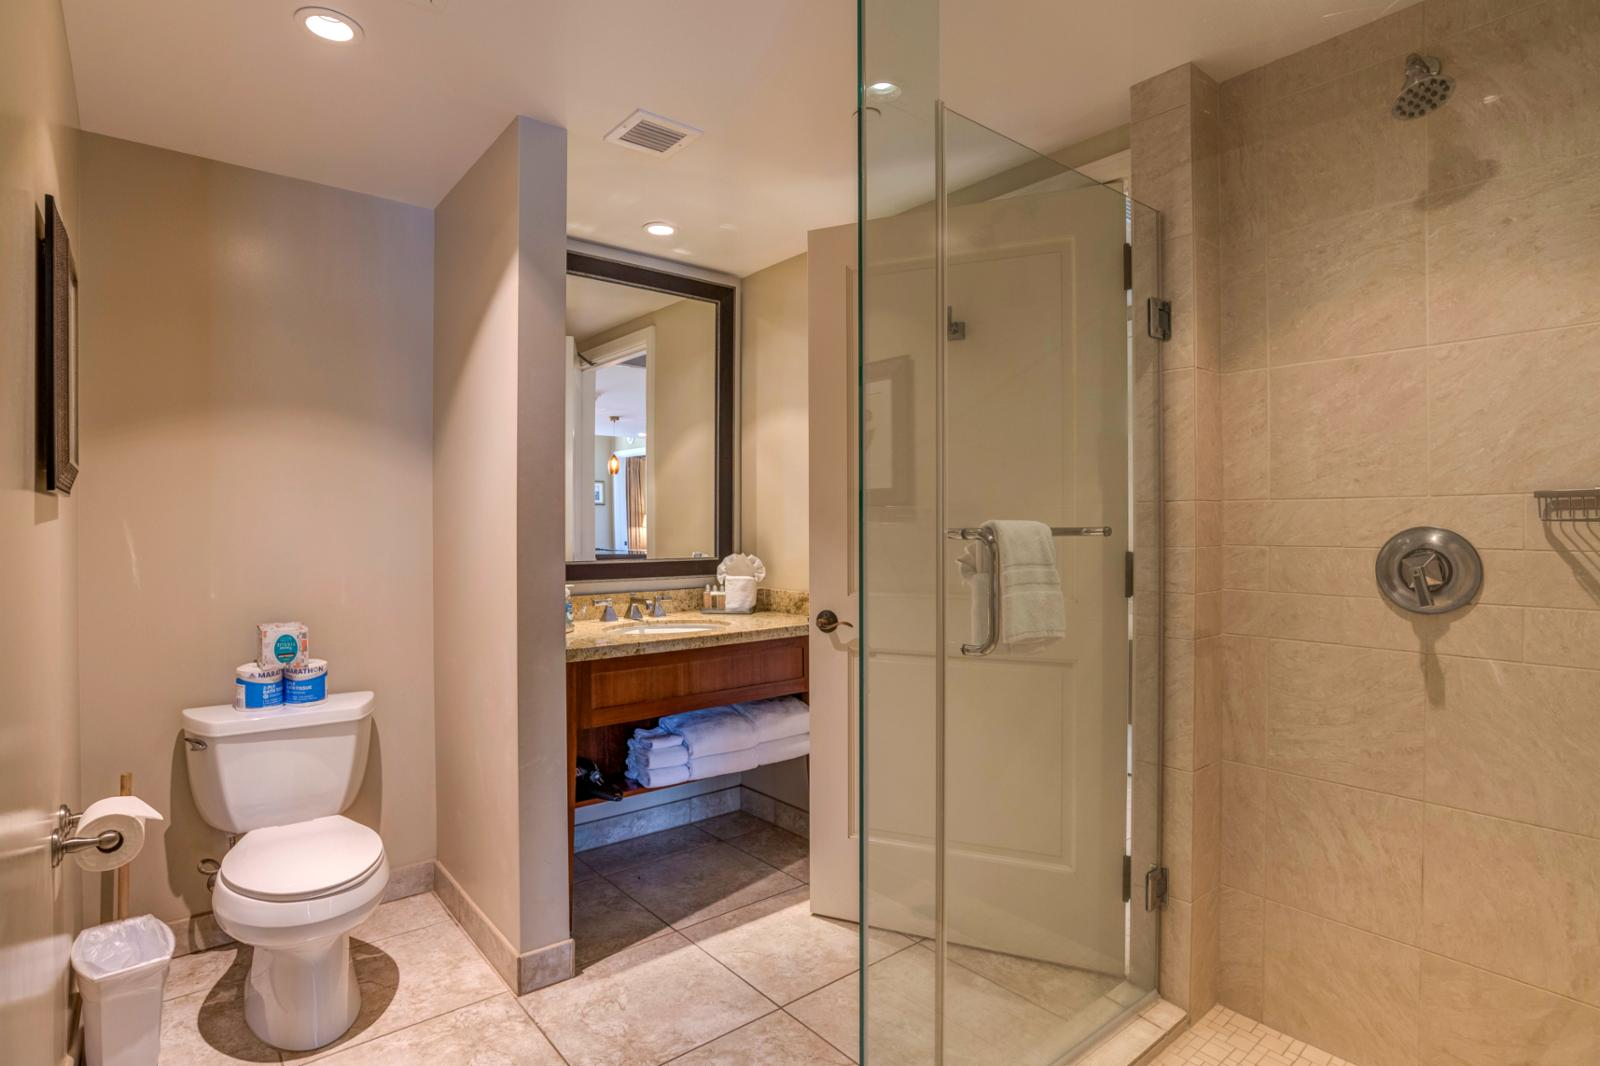 Hallway access, glass enclosed shower with a generous layout